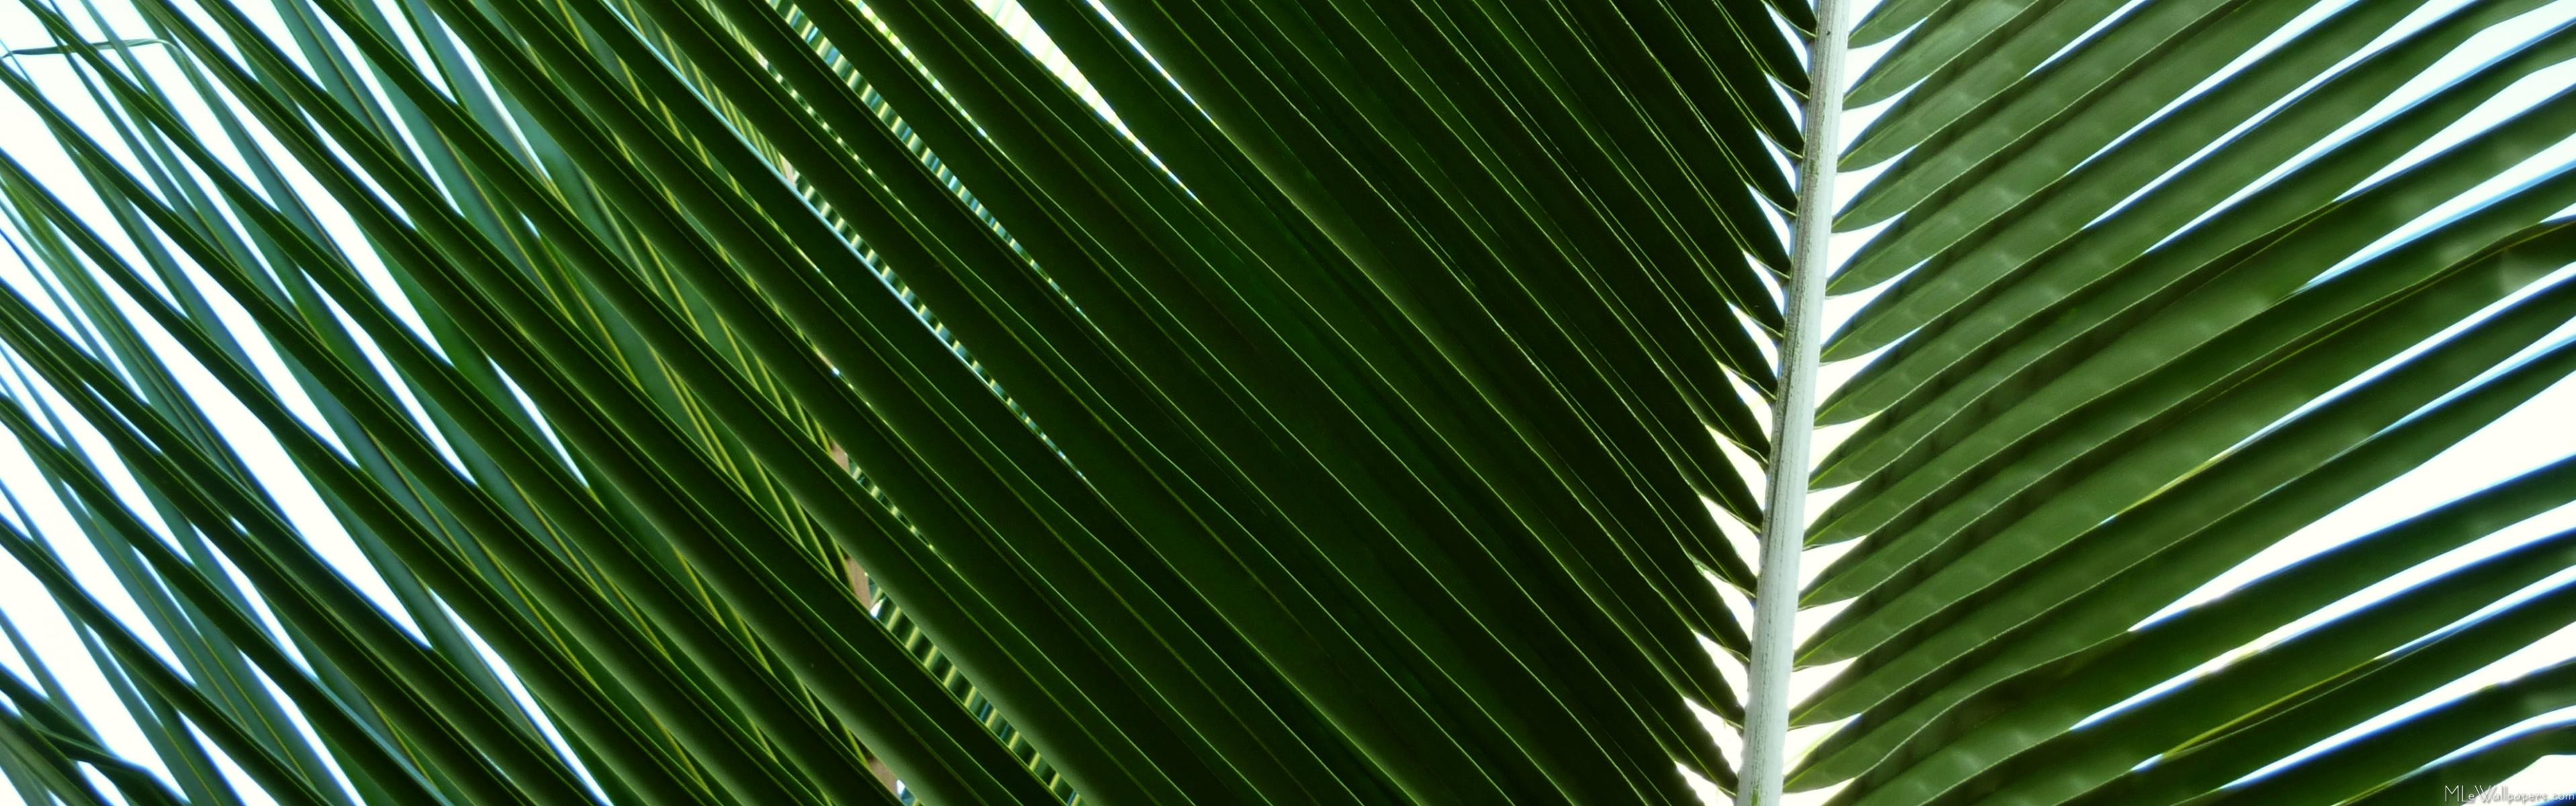 MLeWallpapers.com  Overlapping Palm Fronds